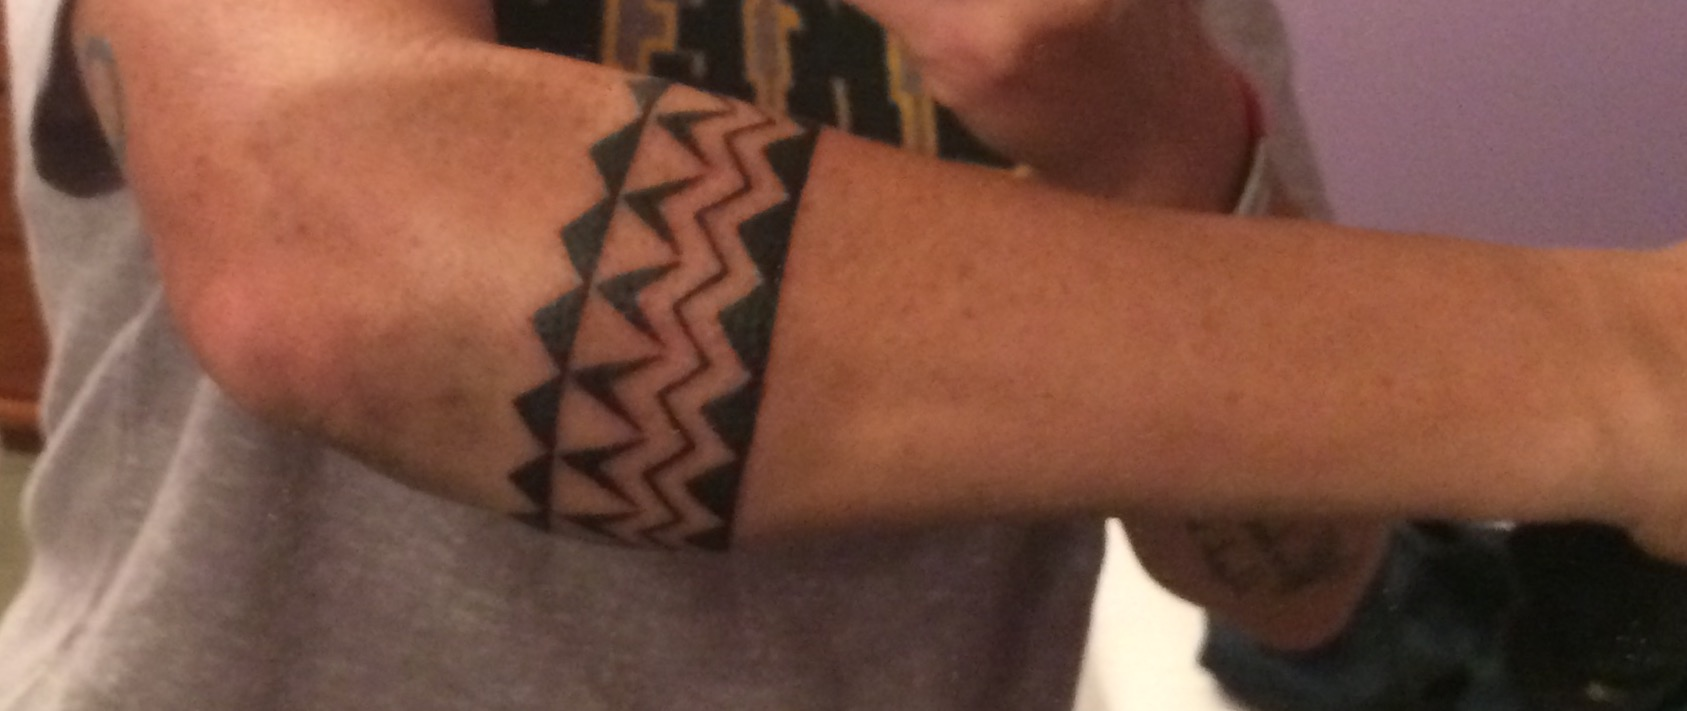 Hawaiian Band Tattoo On Man Right Forearm